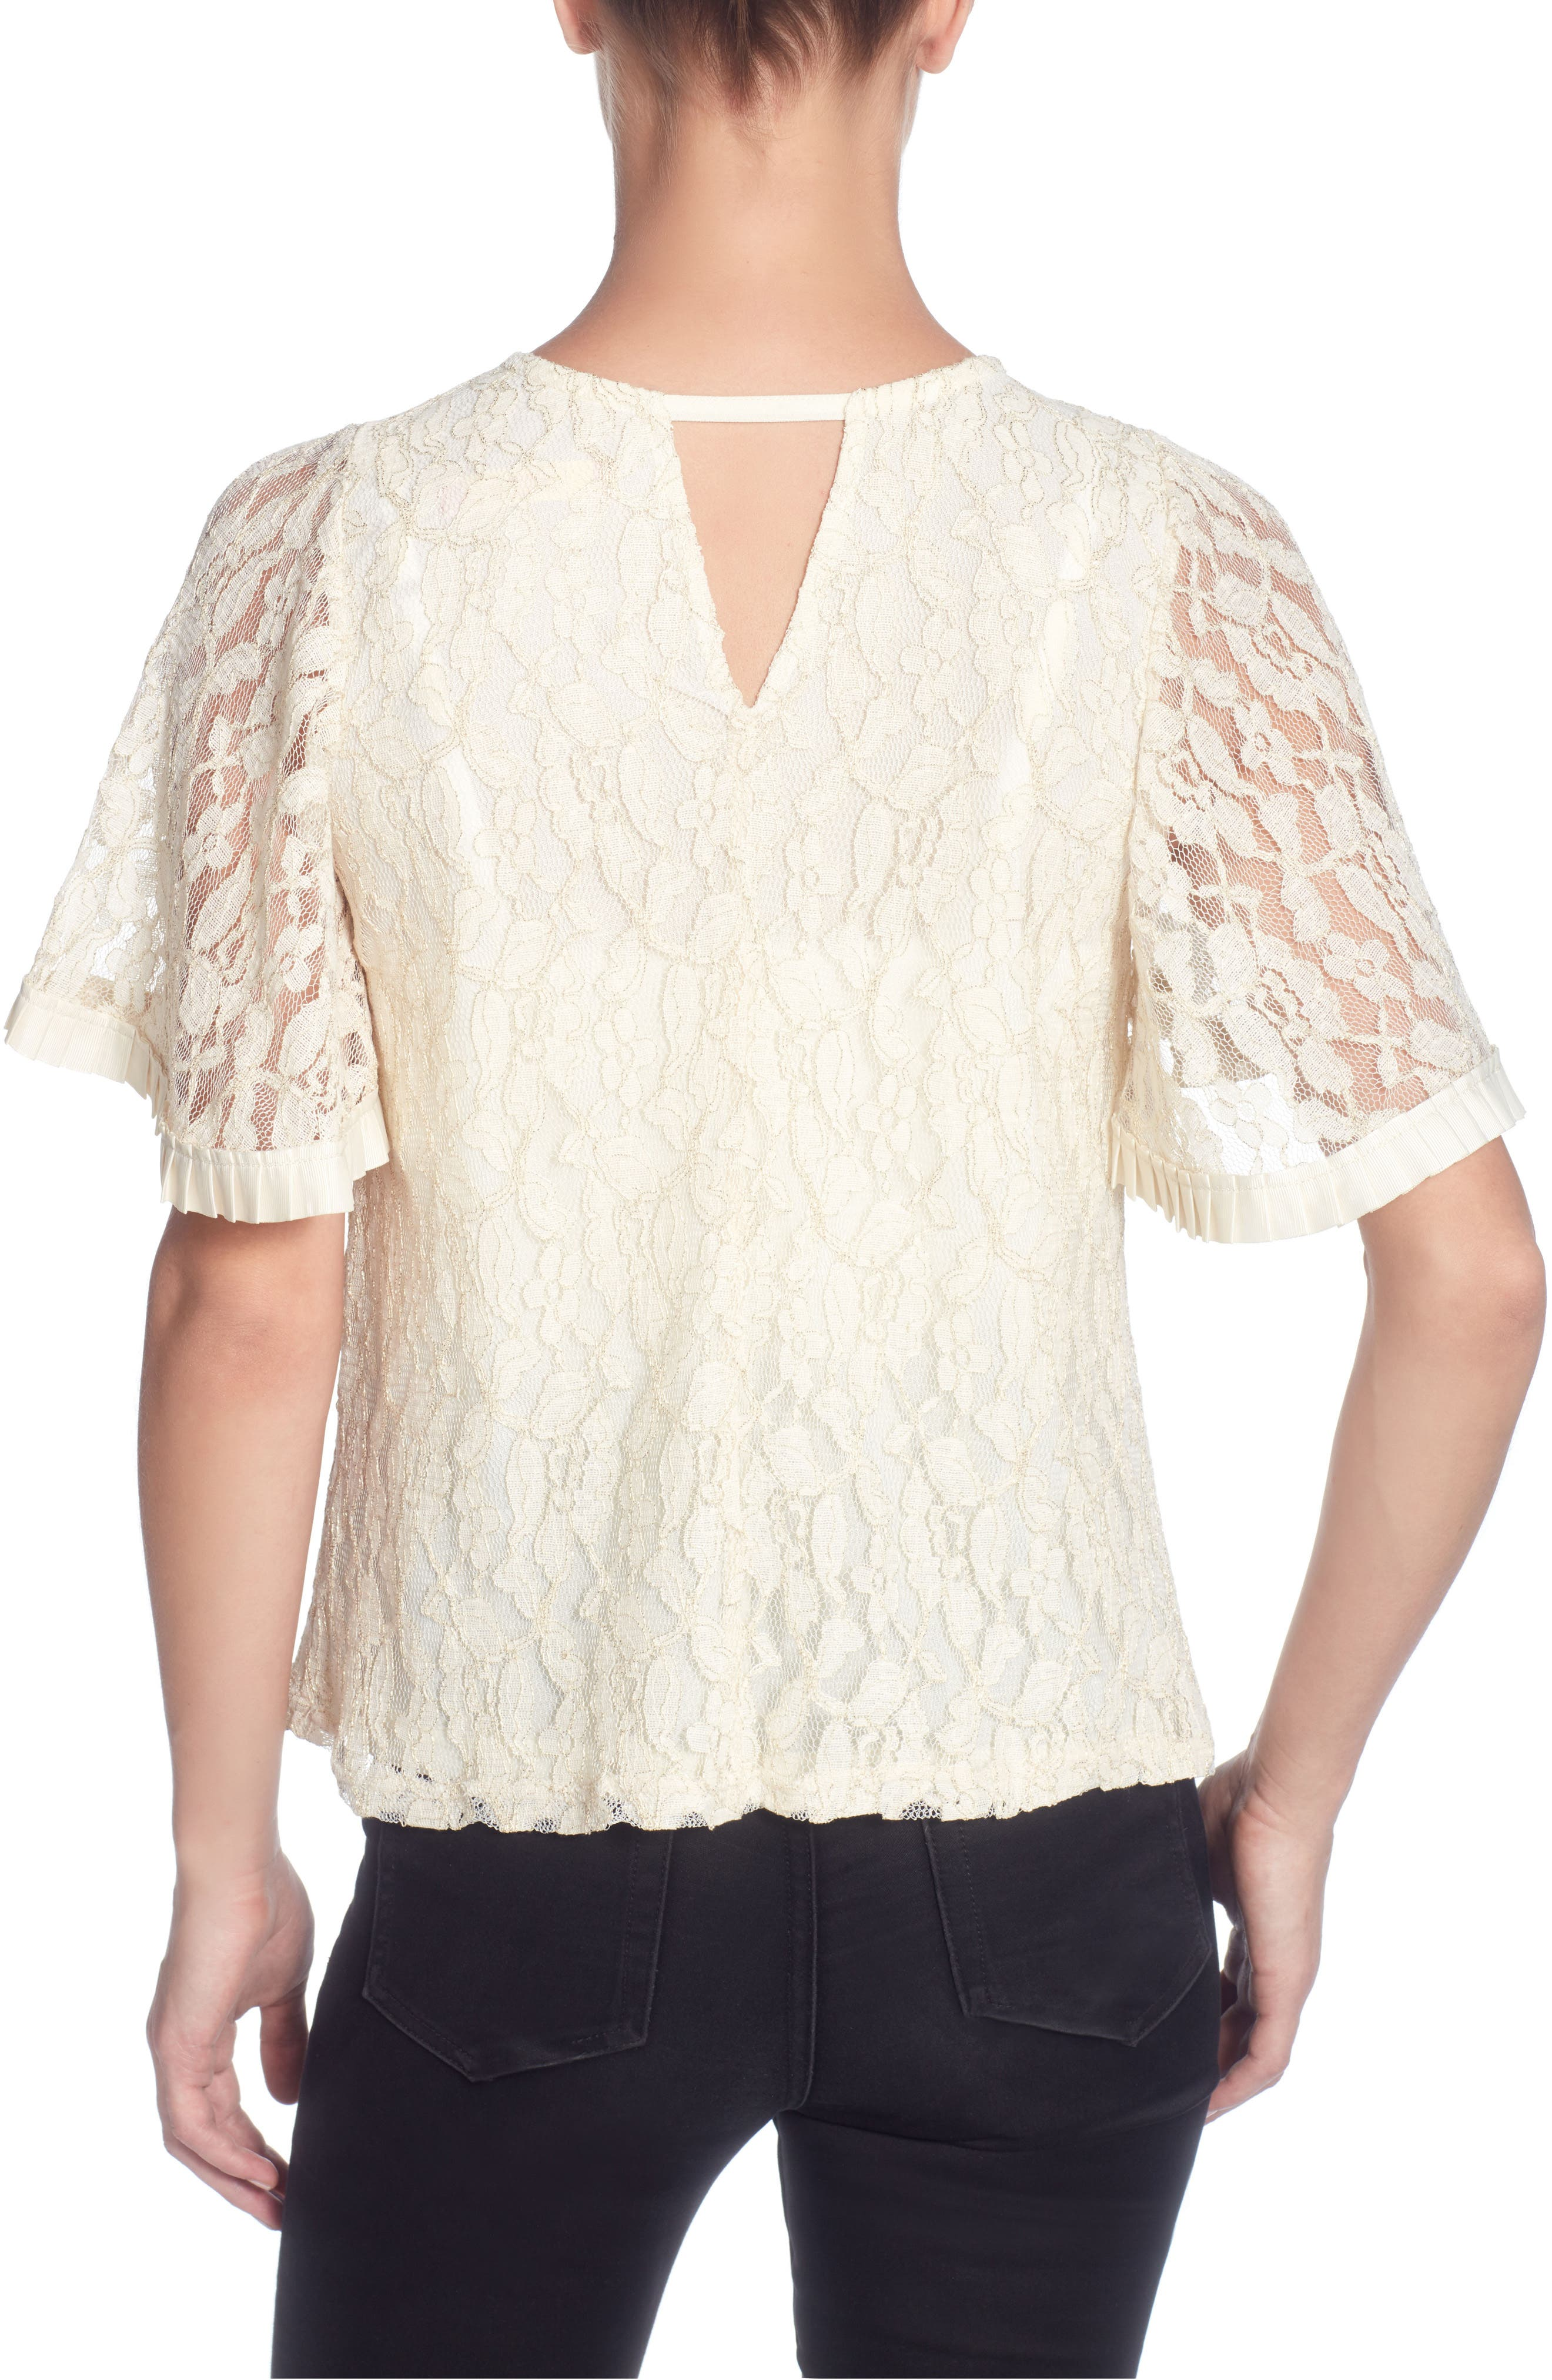 Opal Lace Top,                             Alternate thumbnail 2, color,                             Ivory